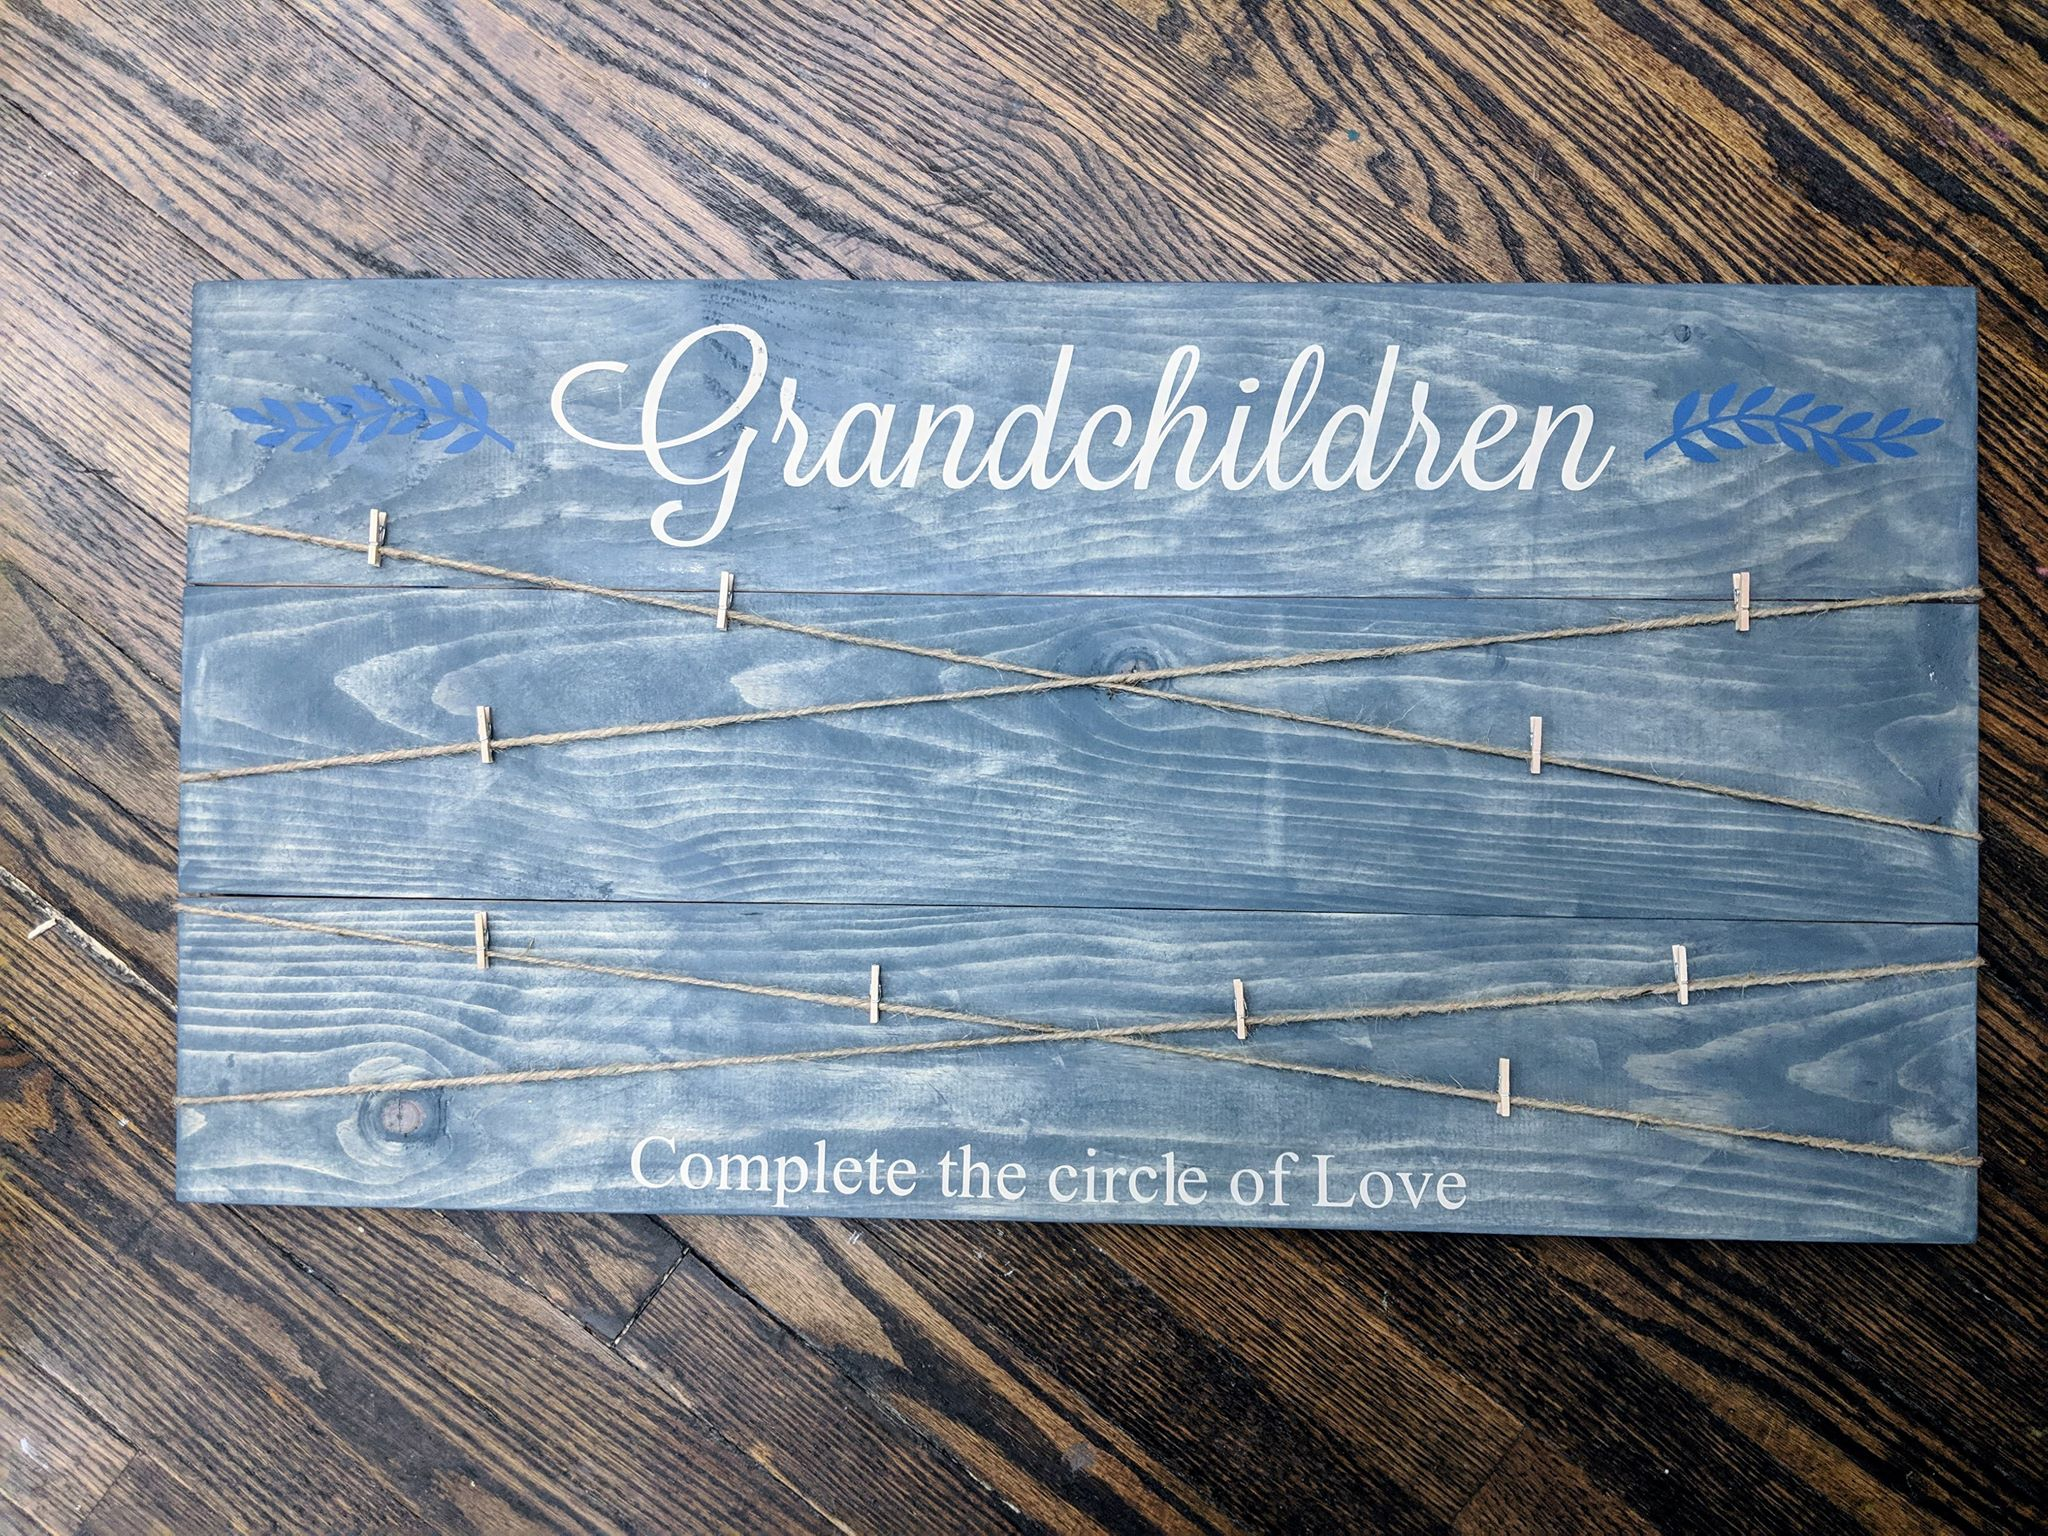 Grandchildren Complete the circle of Love - Photo Board